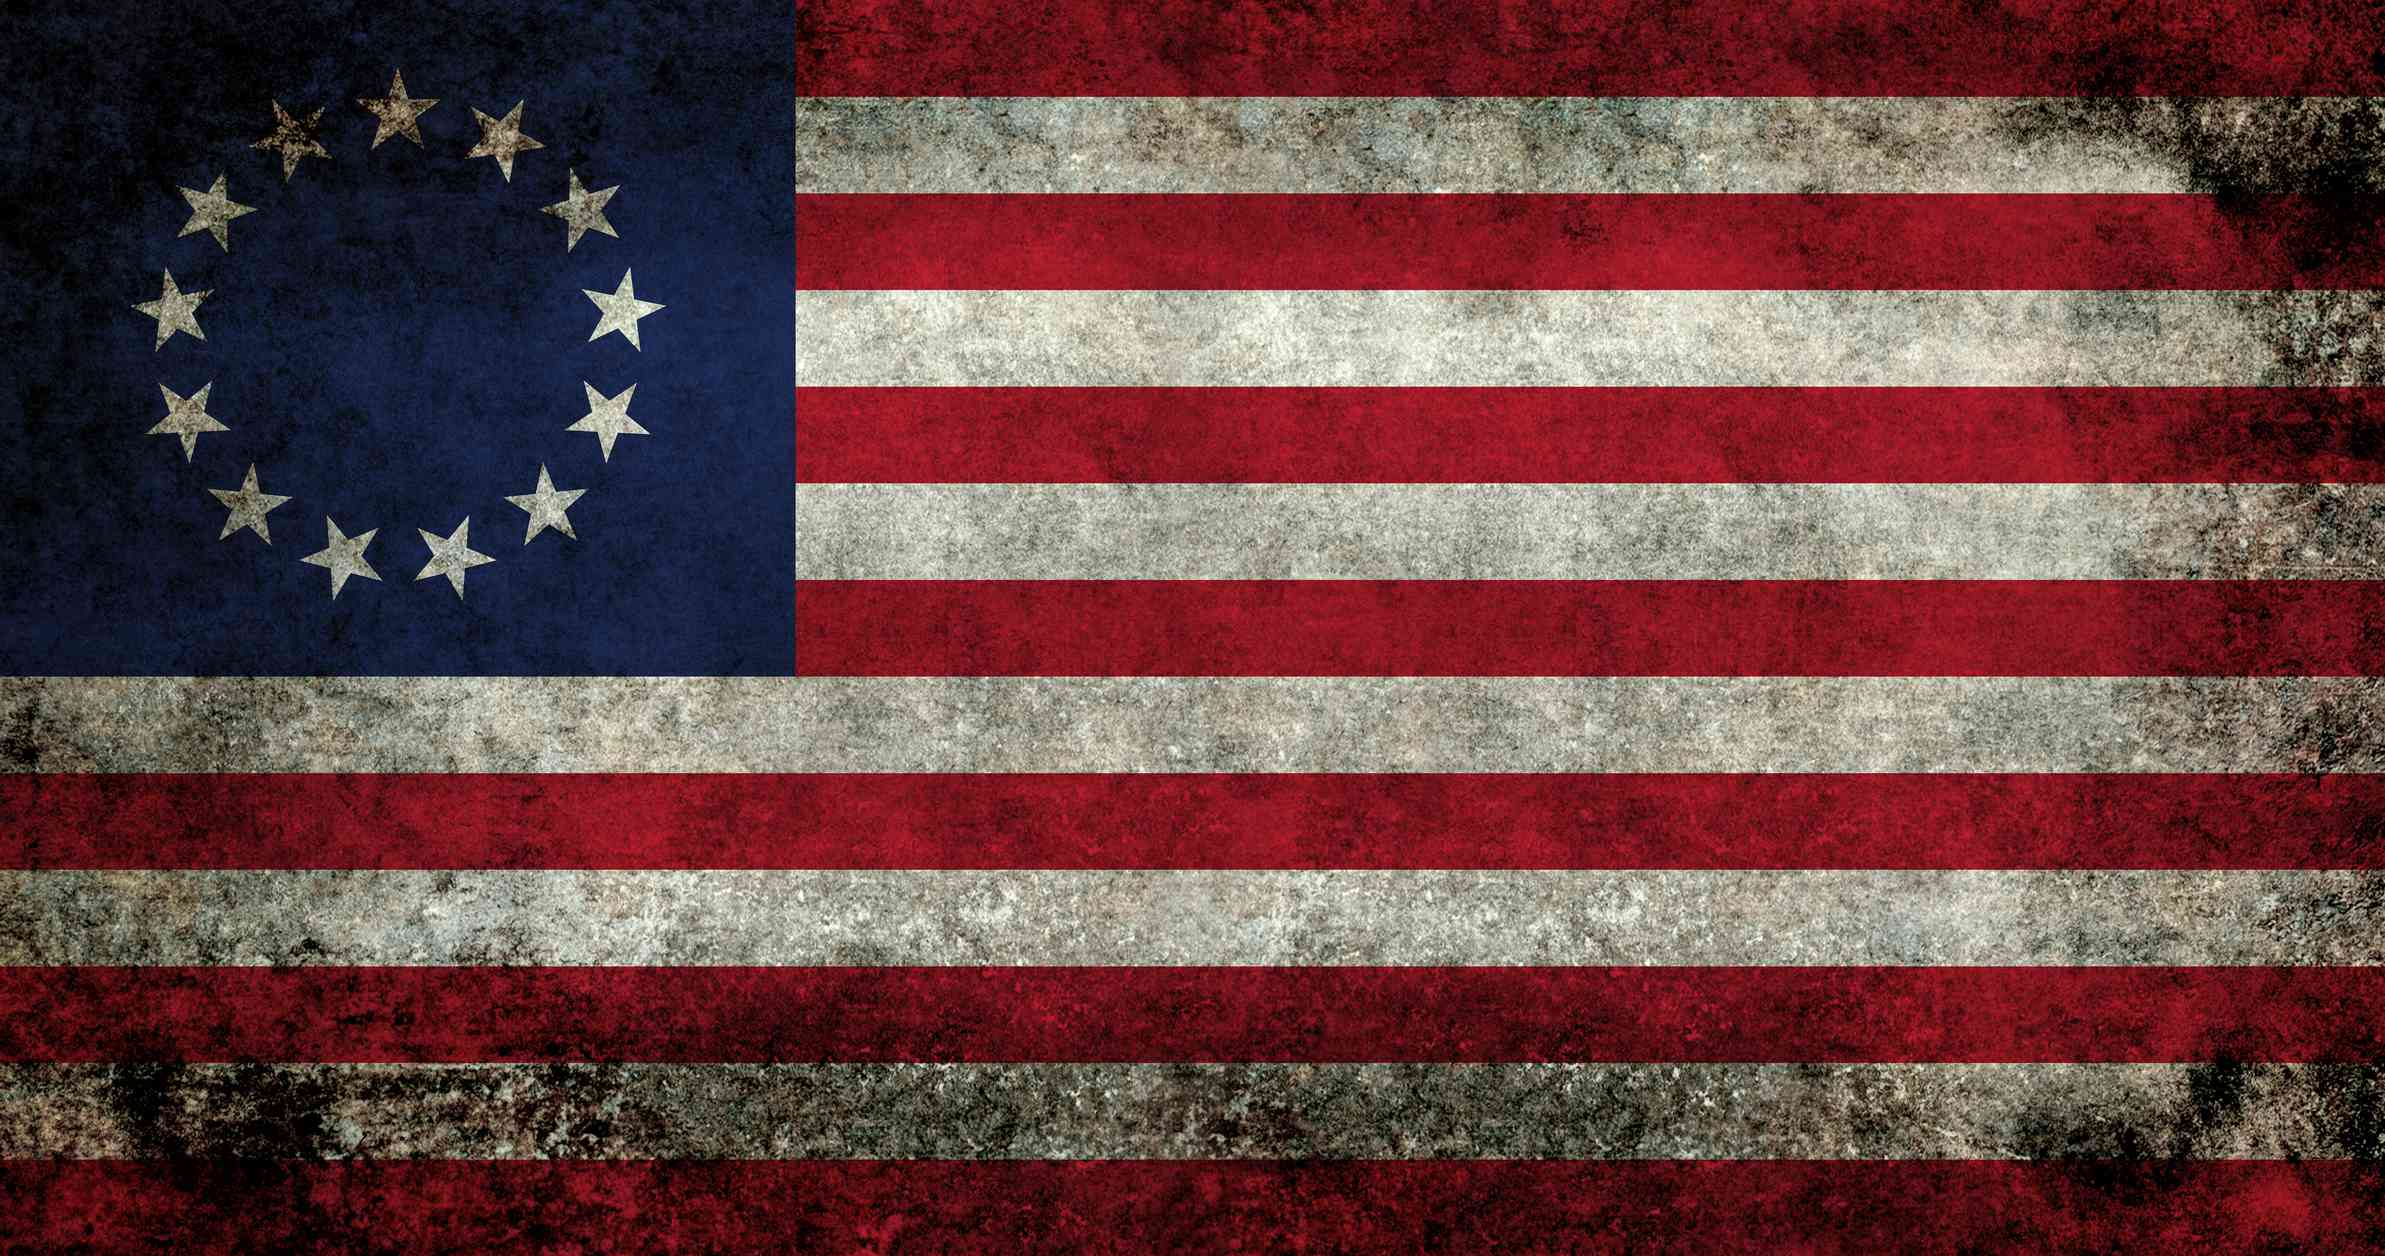 USA flag, the Betsy Ross version with grungy treatment